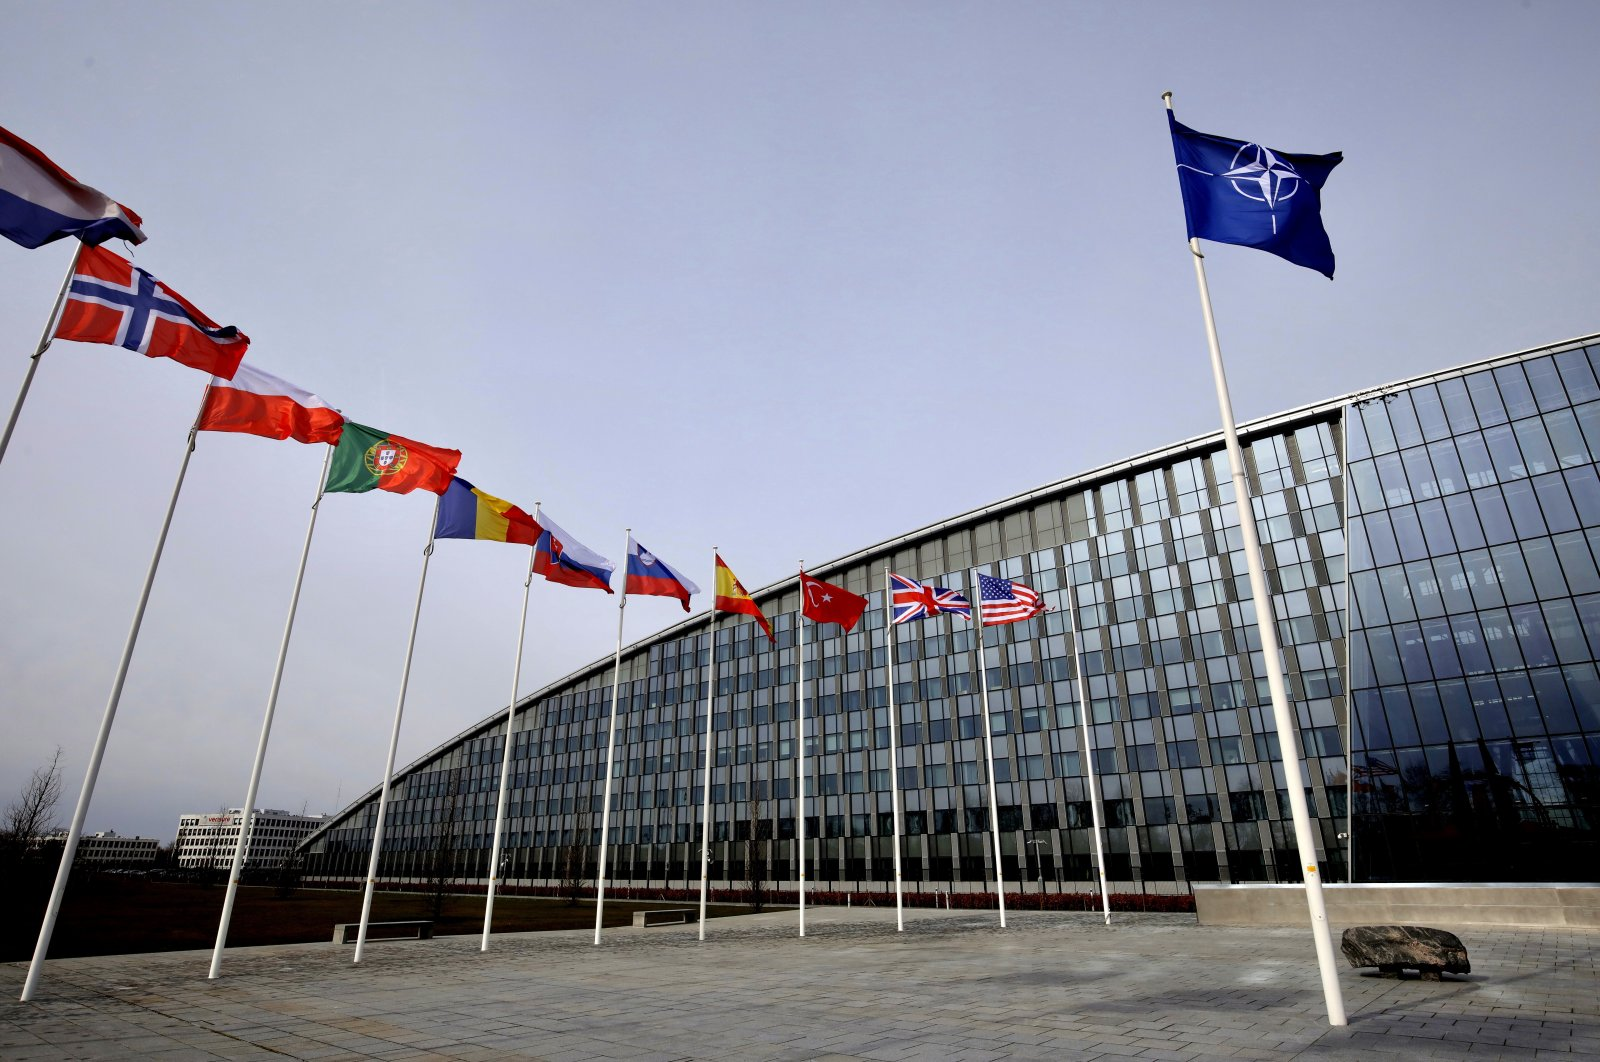 Flags of NATO alliance members flap in the wind outside NATO headquarters in Brussels, Belgium, Feb. 28, 2020. (AP File Photo)